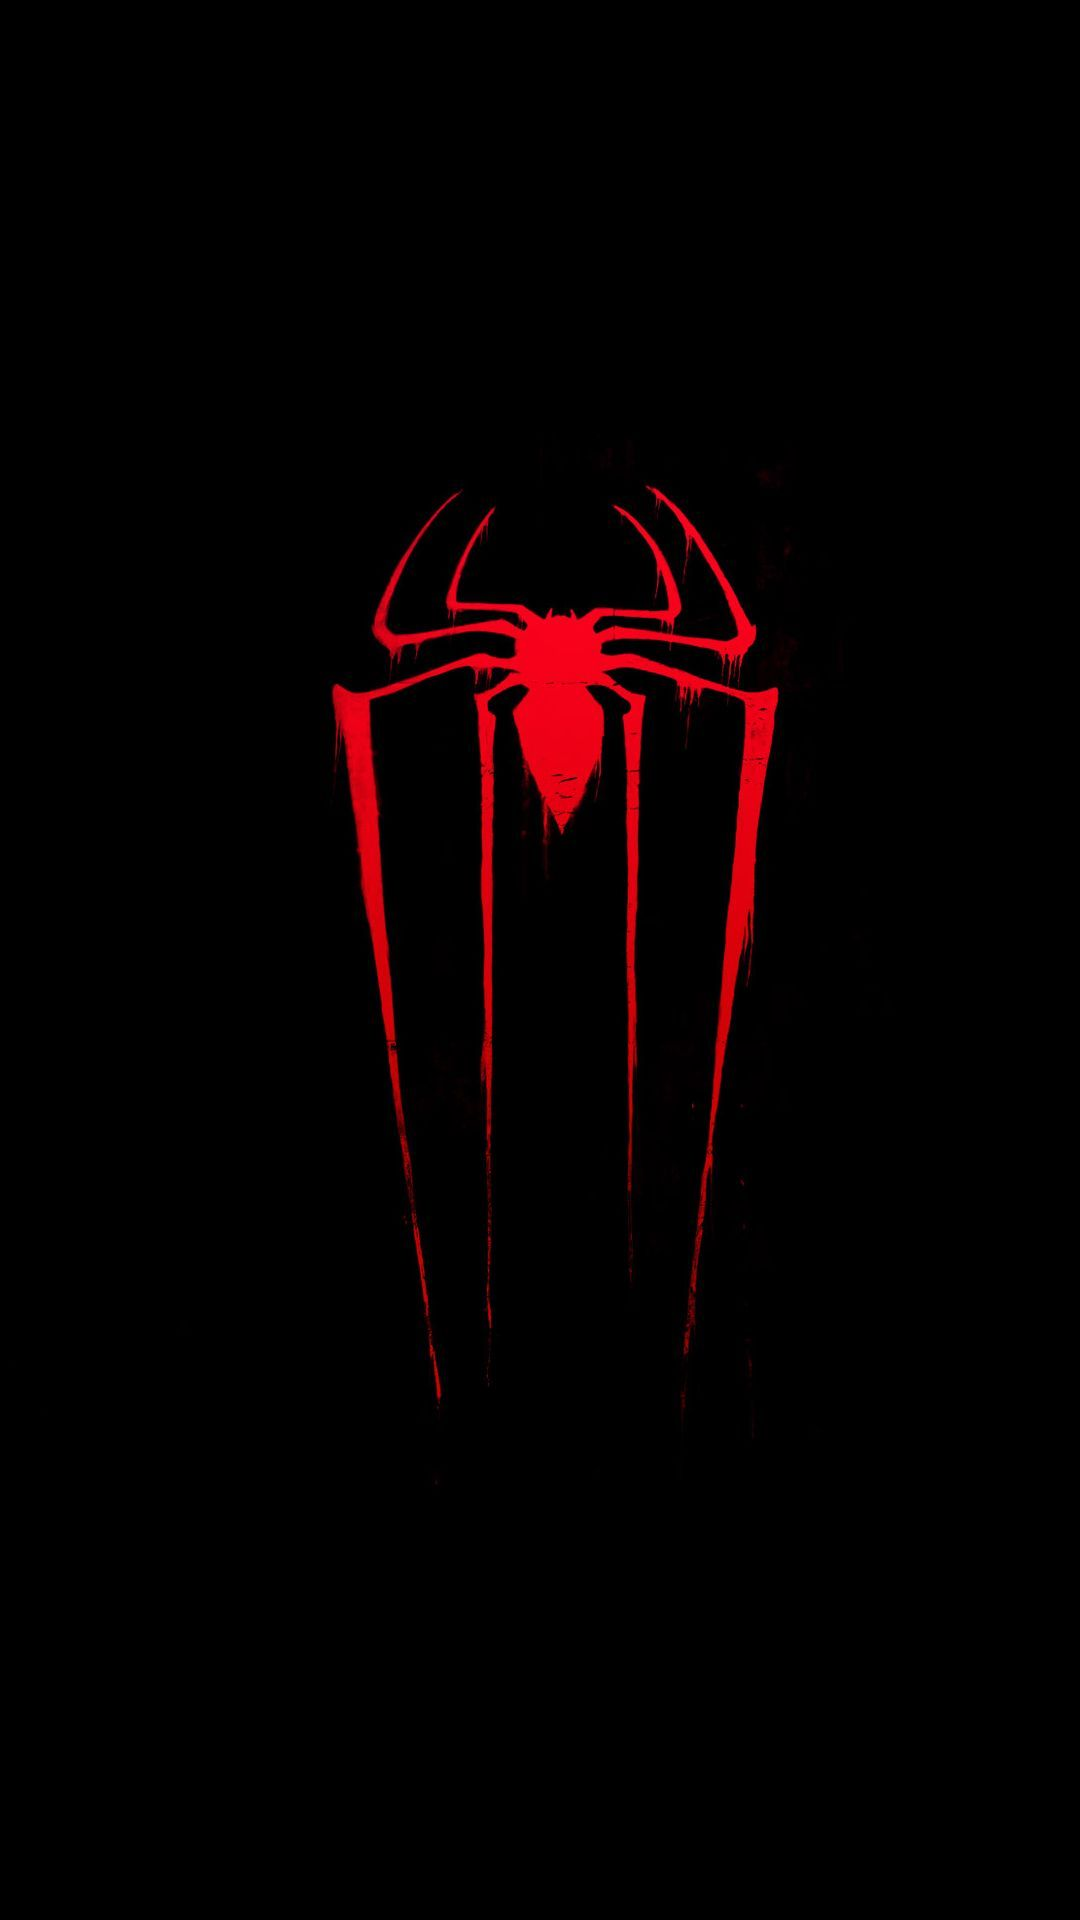 Spider Man Logo Phone Wallpapers   Top Spider Man Logo Phone 1080x1920